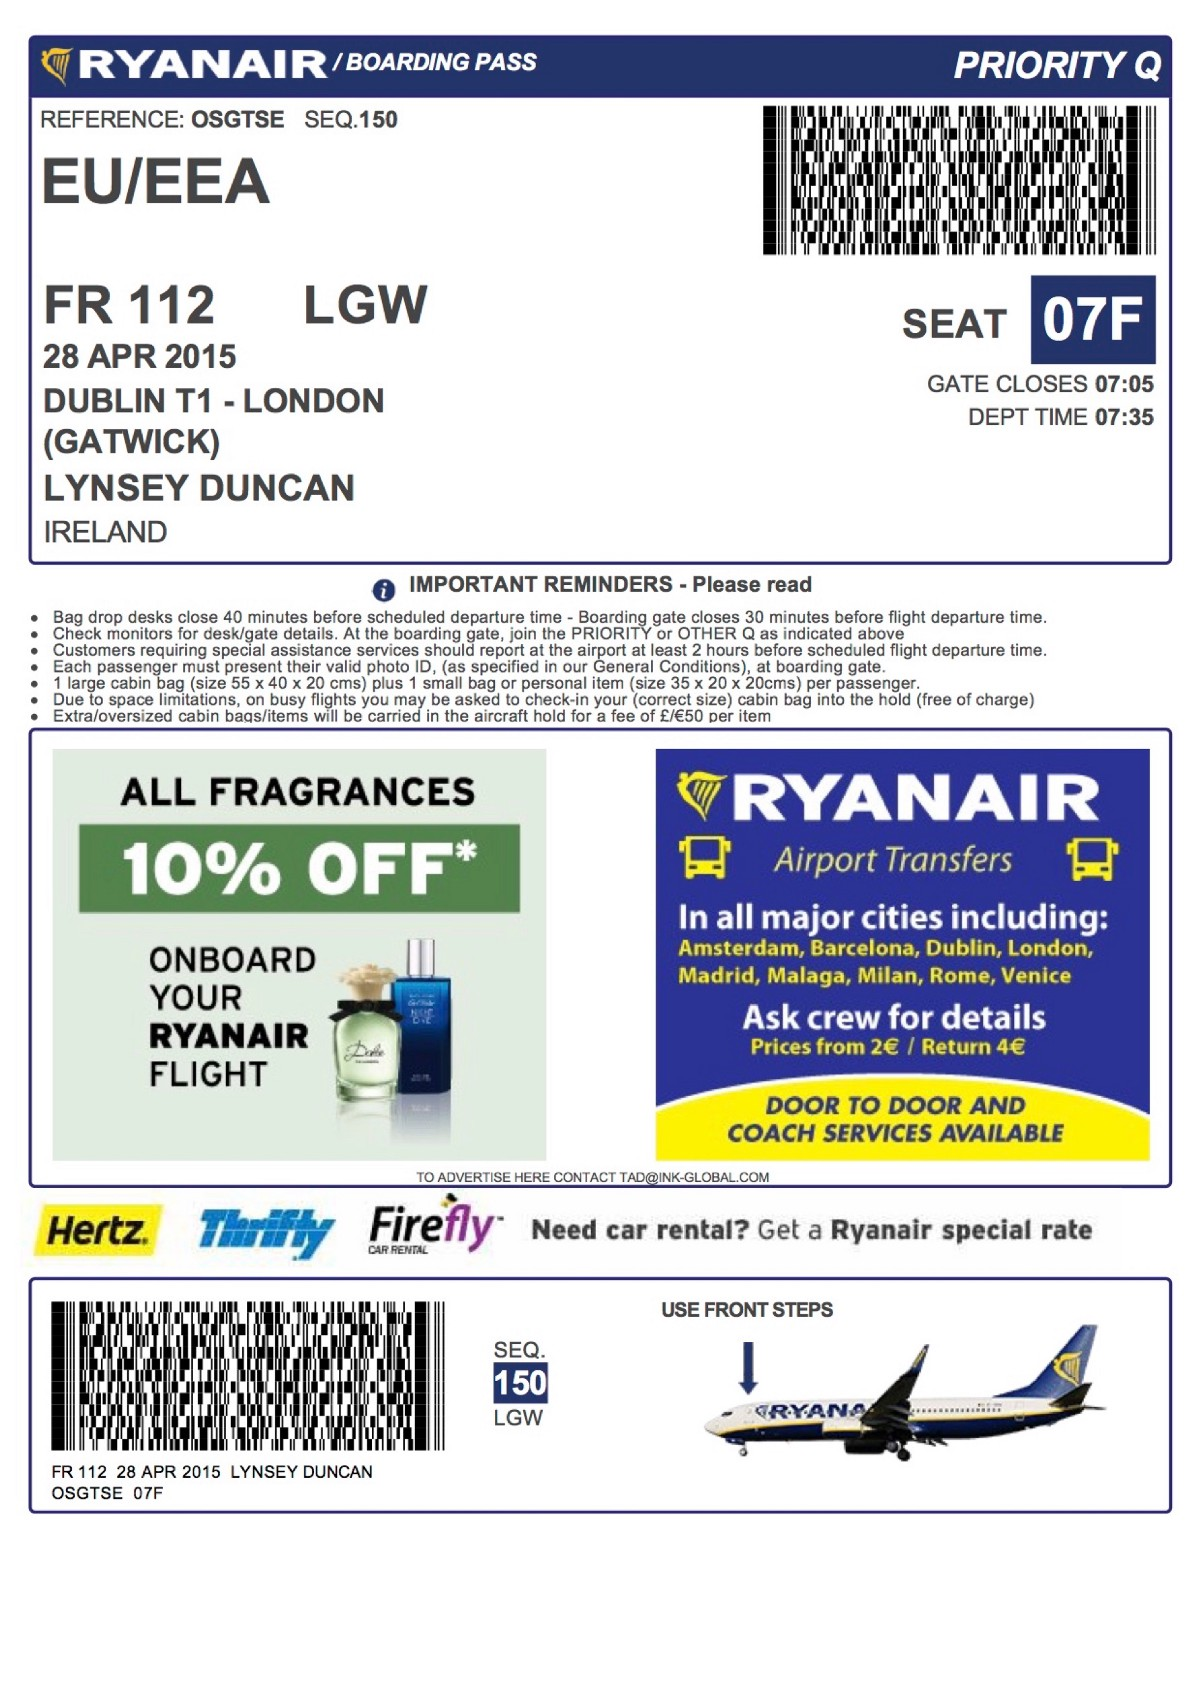 Old Boarding Pass And Wireframe Of New Concept